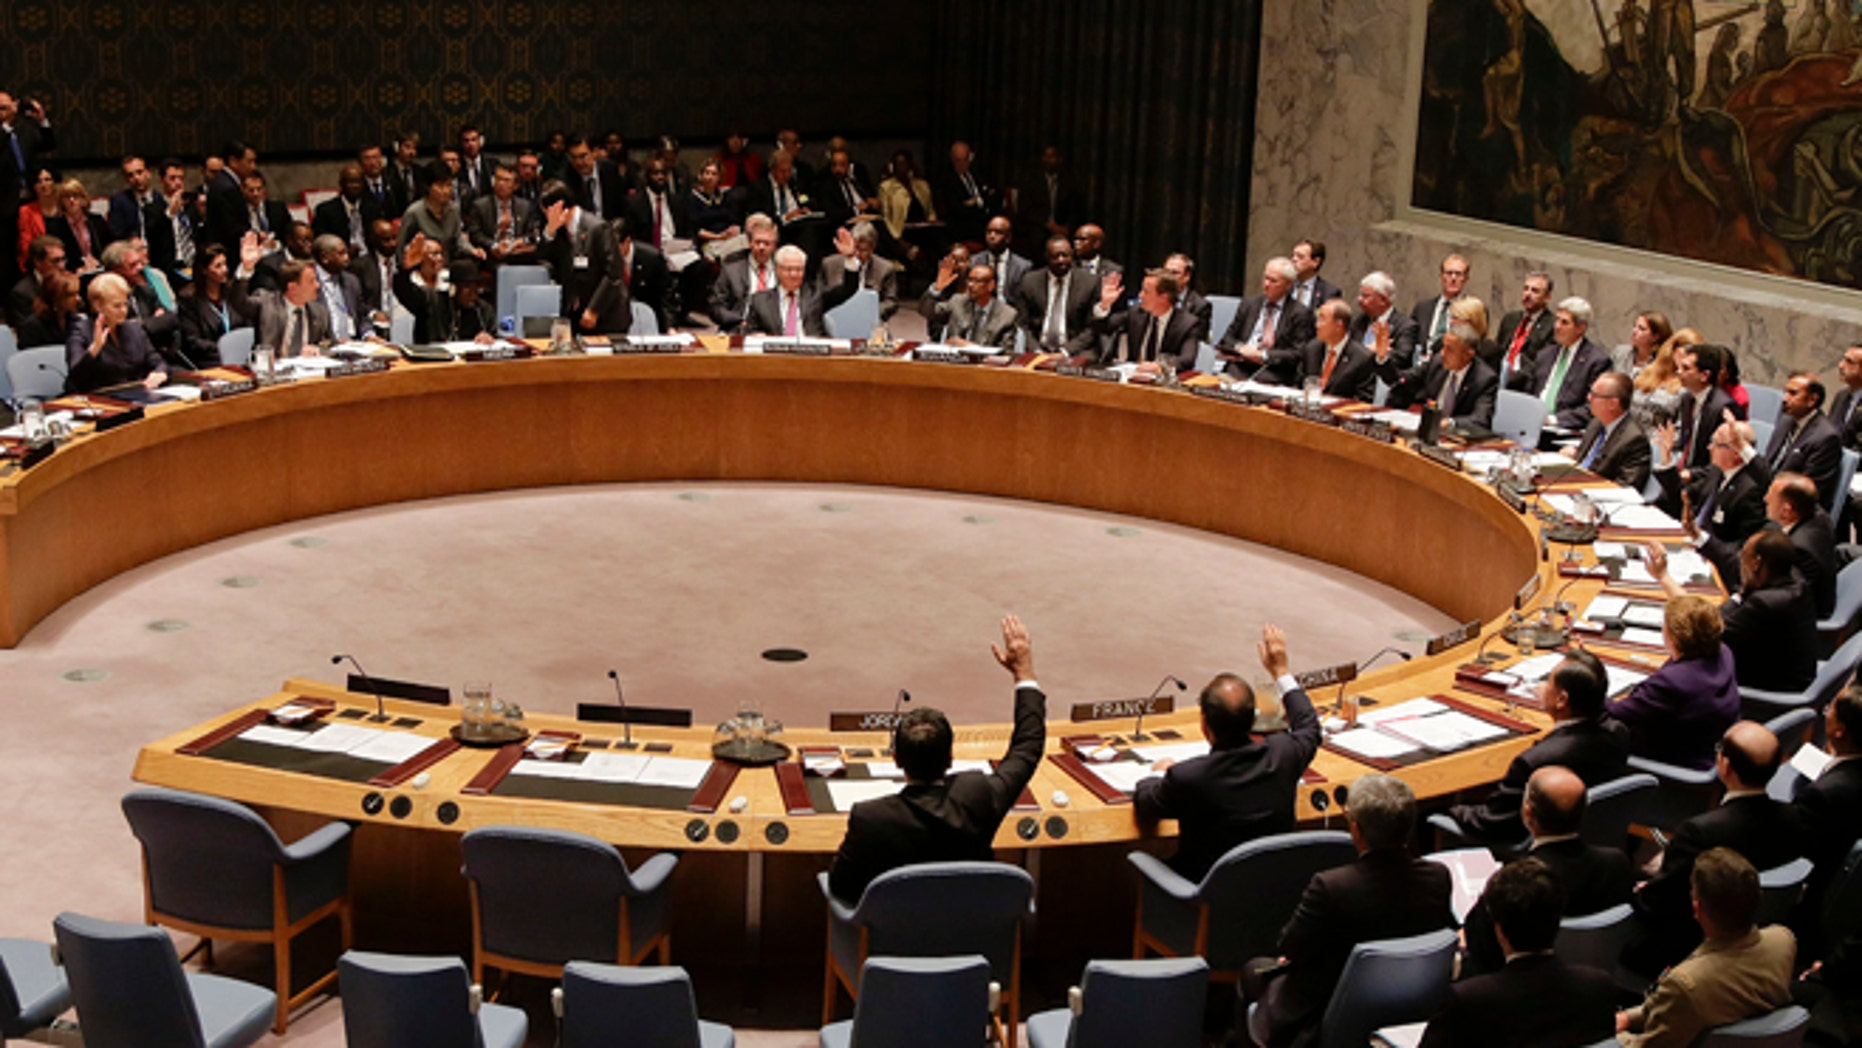 Heads of state vote on a resolution during a UN Security Council meeting, Wednesday, Sept. 24, 2014, at the United Nations. Members of the Security Council adopted a resolution that would require all countries to prevent the recruitment and transport of would-be foreign fighters preparing to join terrorist groups such as the Islamic State group. (AP Photo/Julie Jacobson)